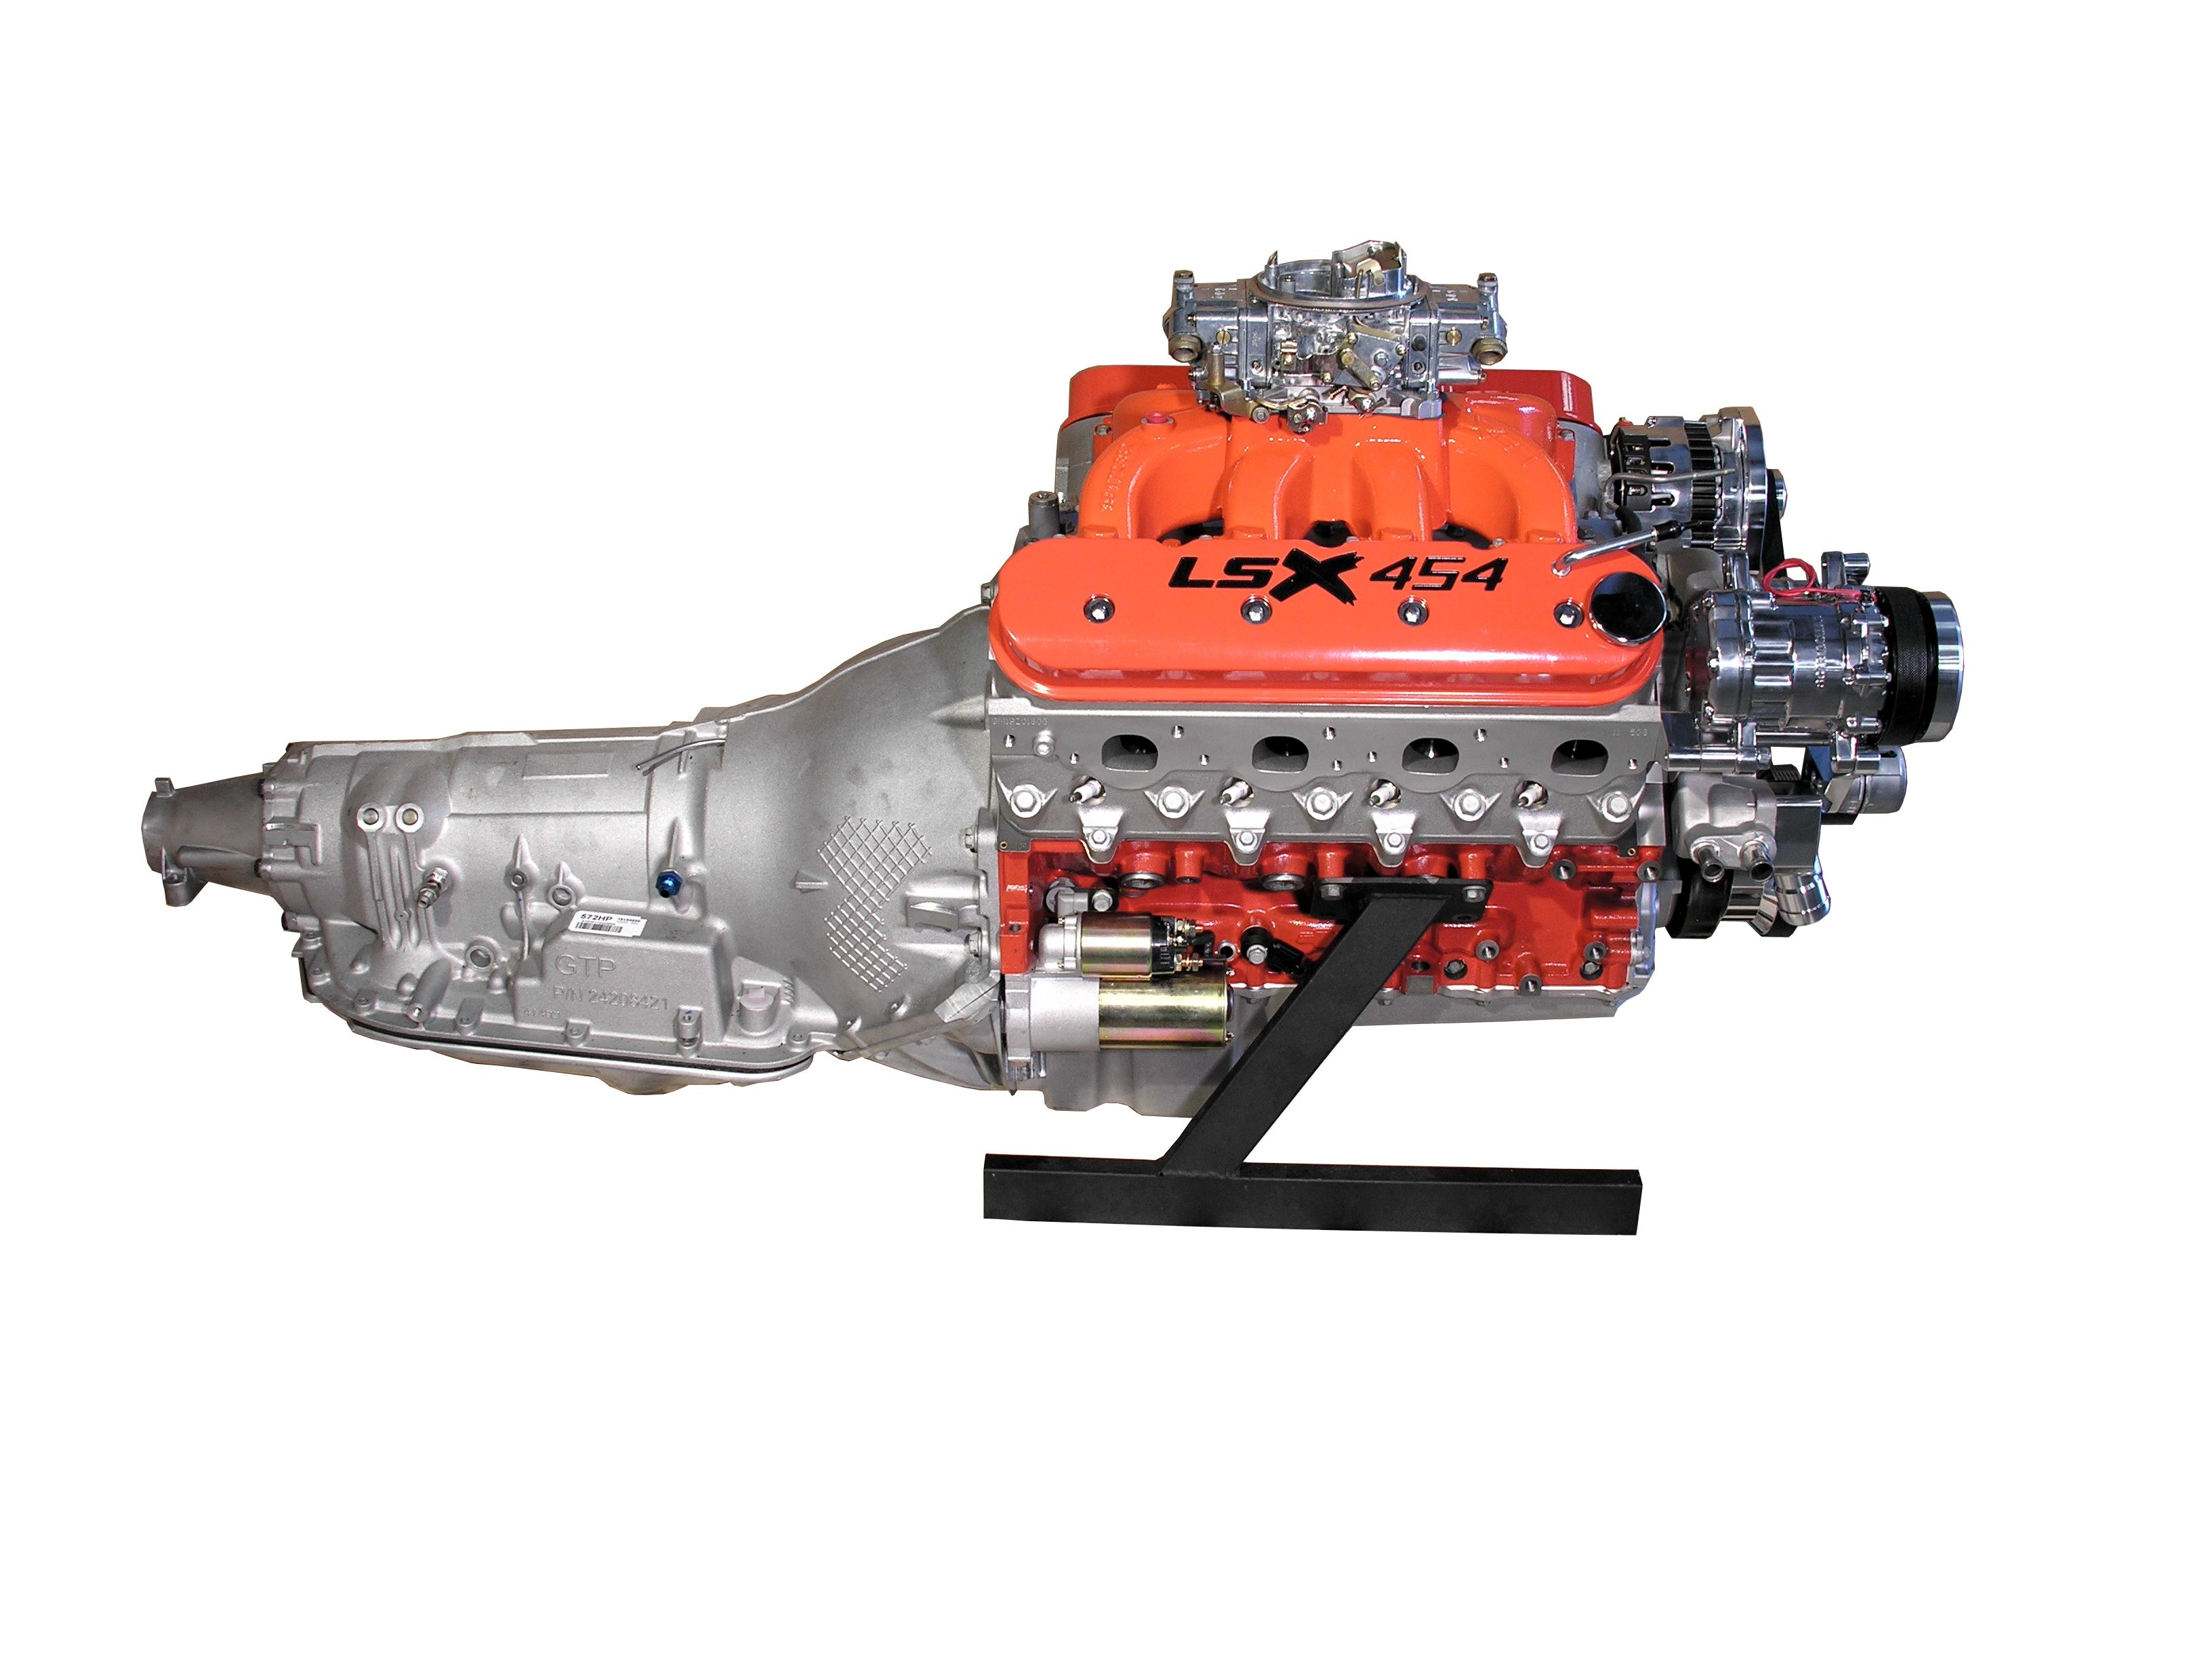 Southern Performance System Spsengines Turnkey Engine Packages Crate Motors Chevy Ls Chevy Motors